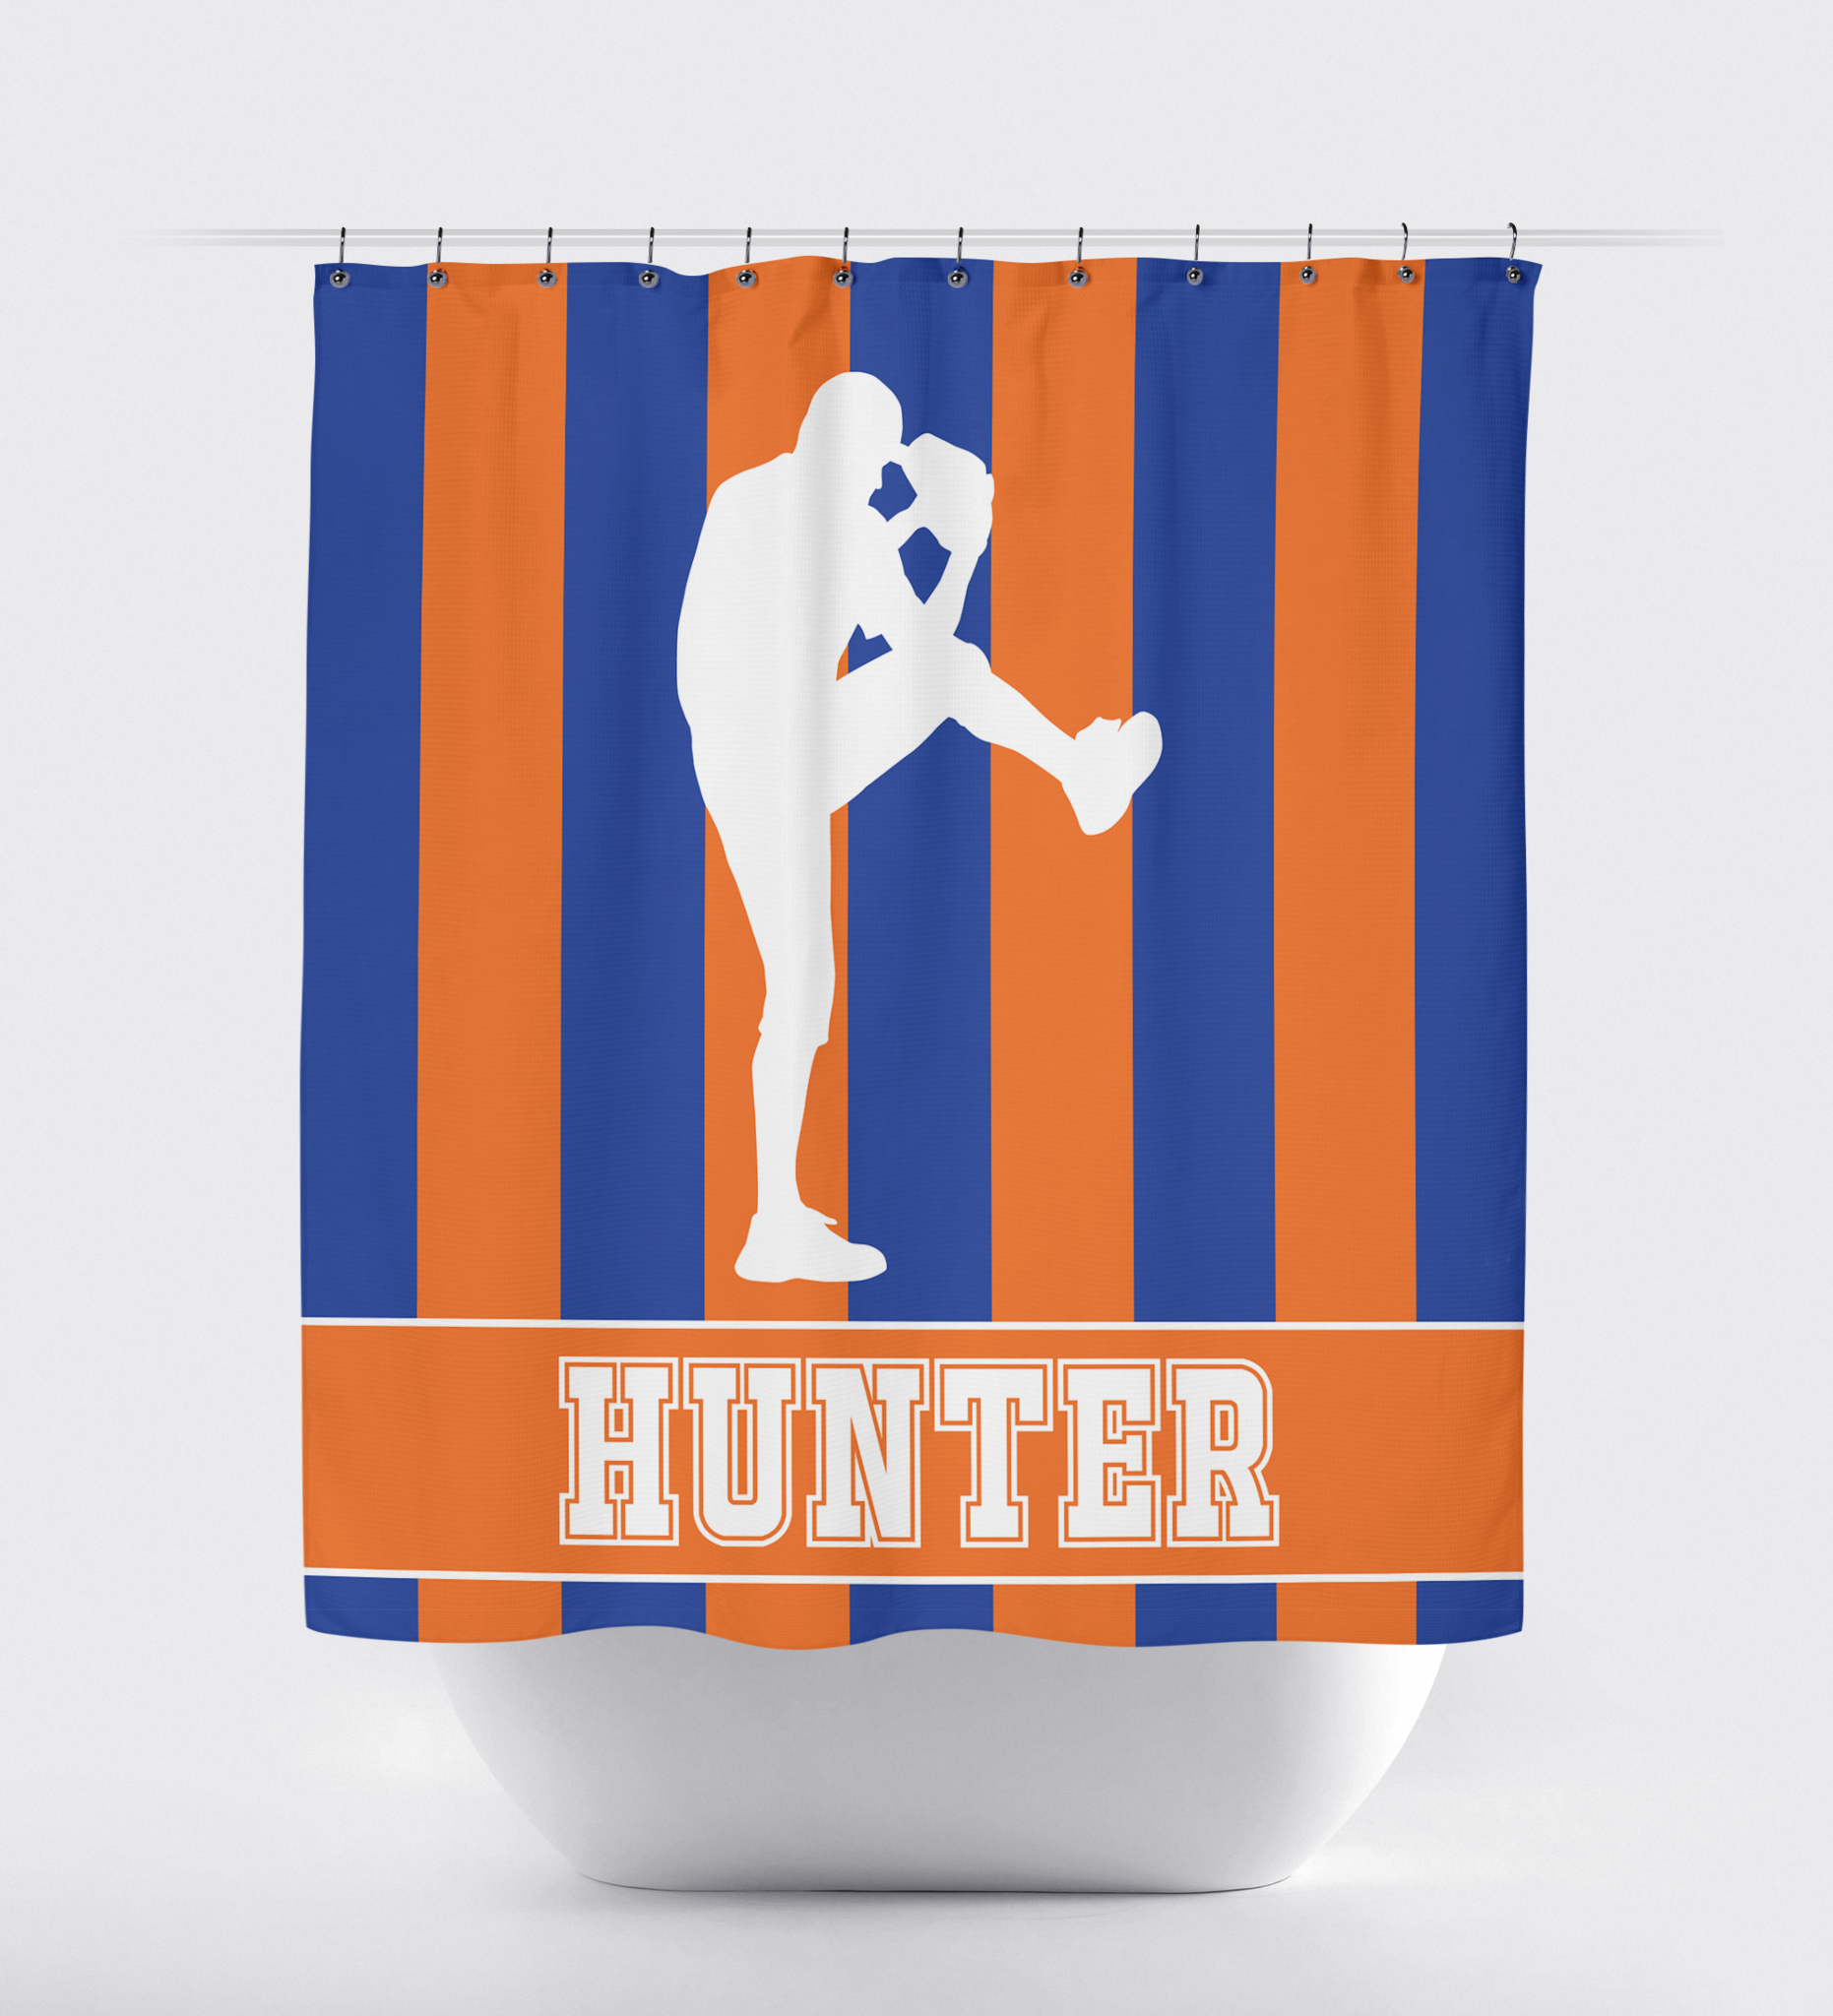 Baseball Shower Curtain -  custom striped baseball player shower curtain sports gifts for boys and teens bathroom decor